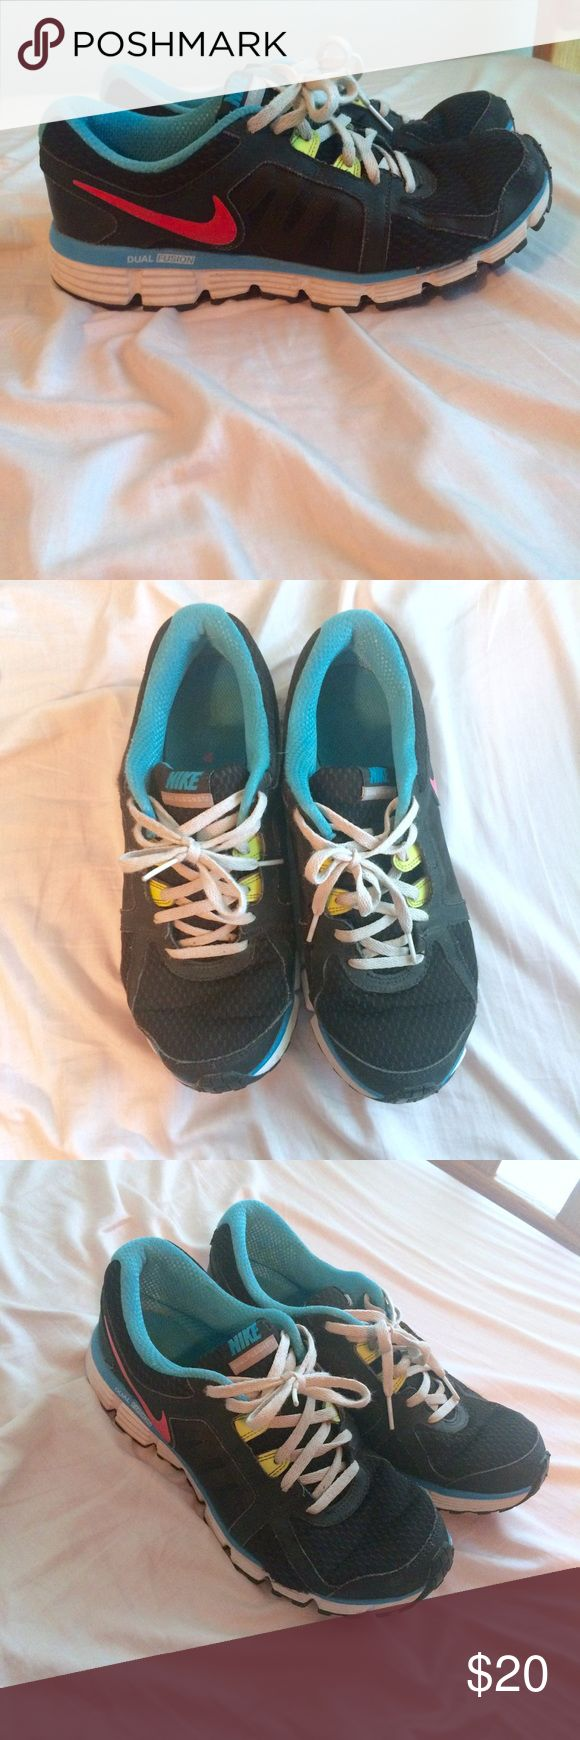 Nike Dual Fusion Multicolored Neon Sneakers Quite worn but still have lots of life. Has a tear near the pinky toe on the right shoe. Very cute Neon accents on shoes. Nike Shoes Athletic Shoes